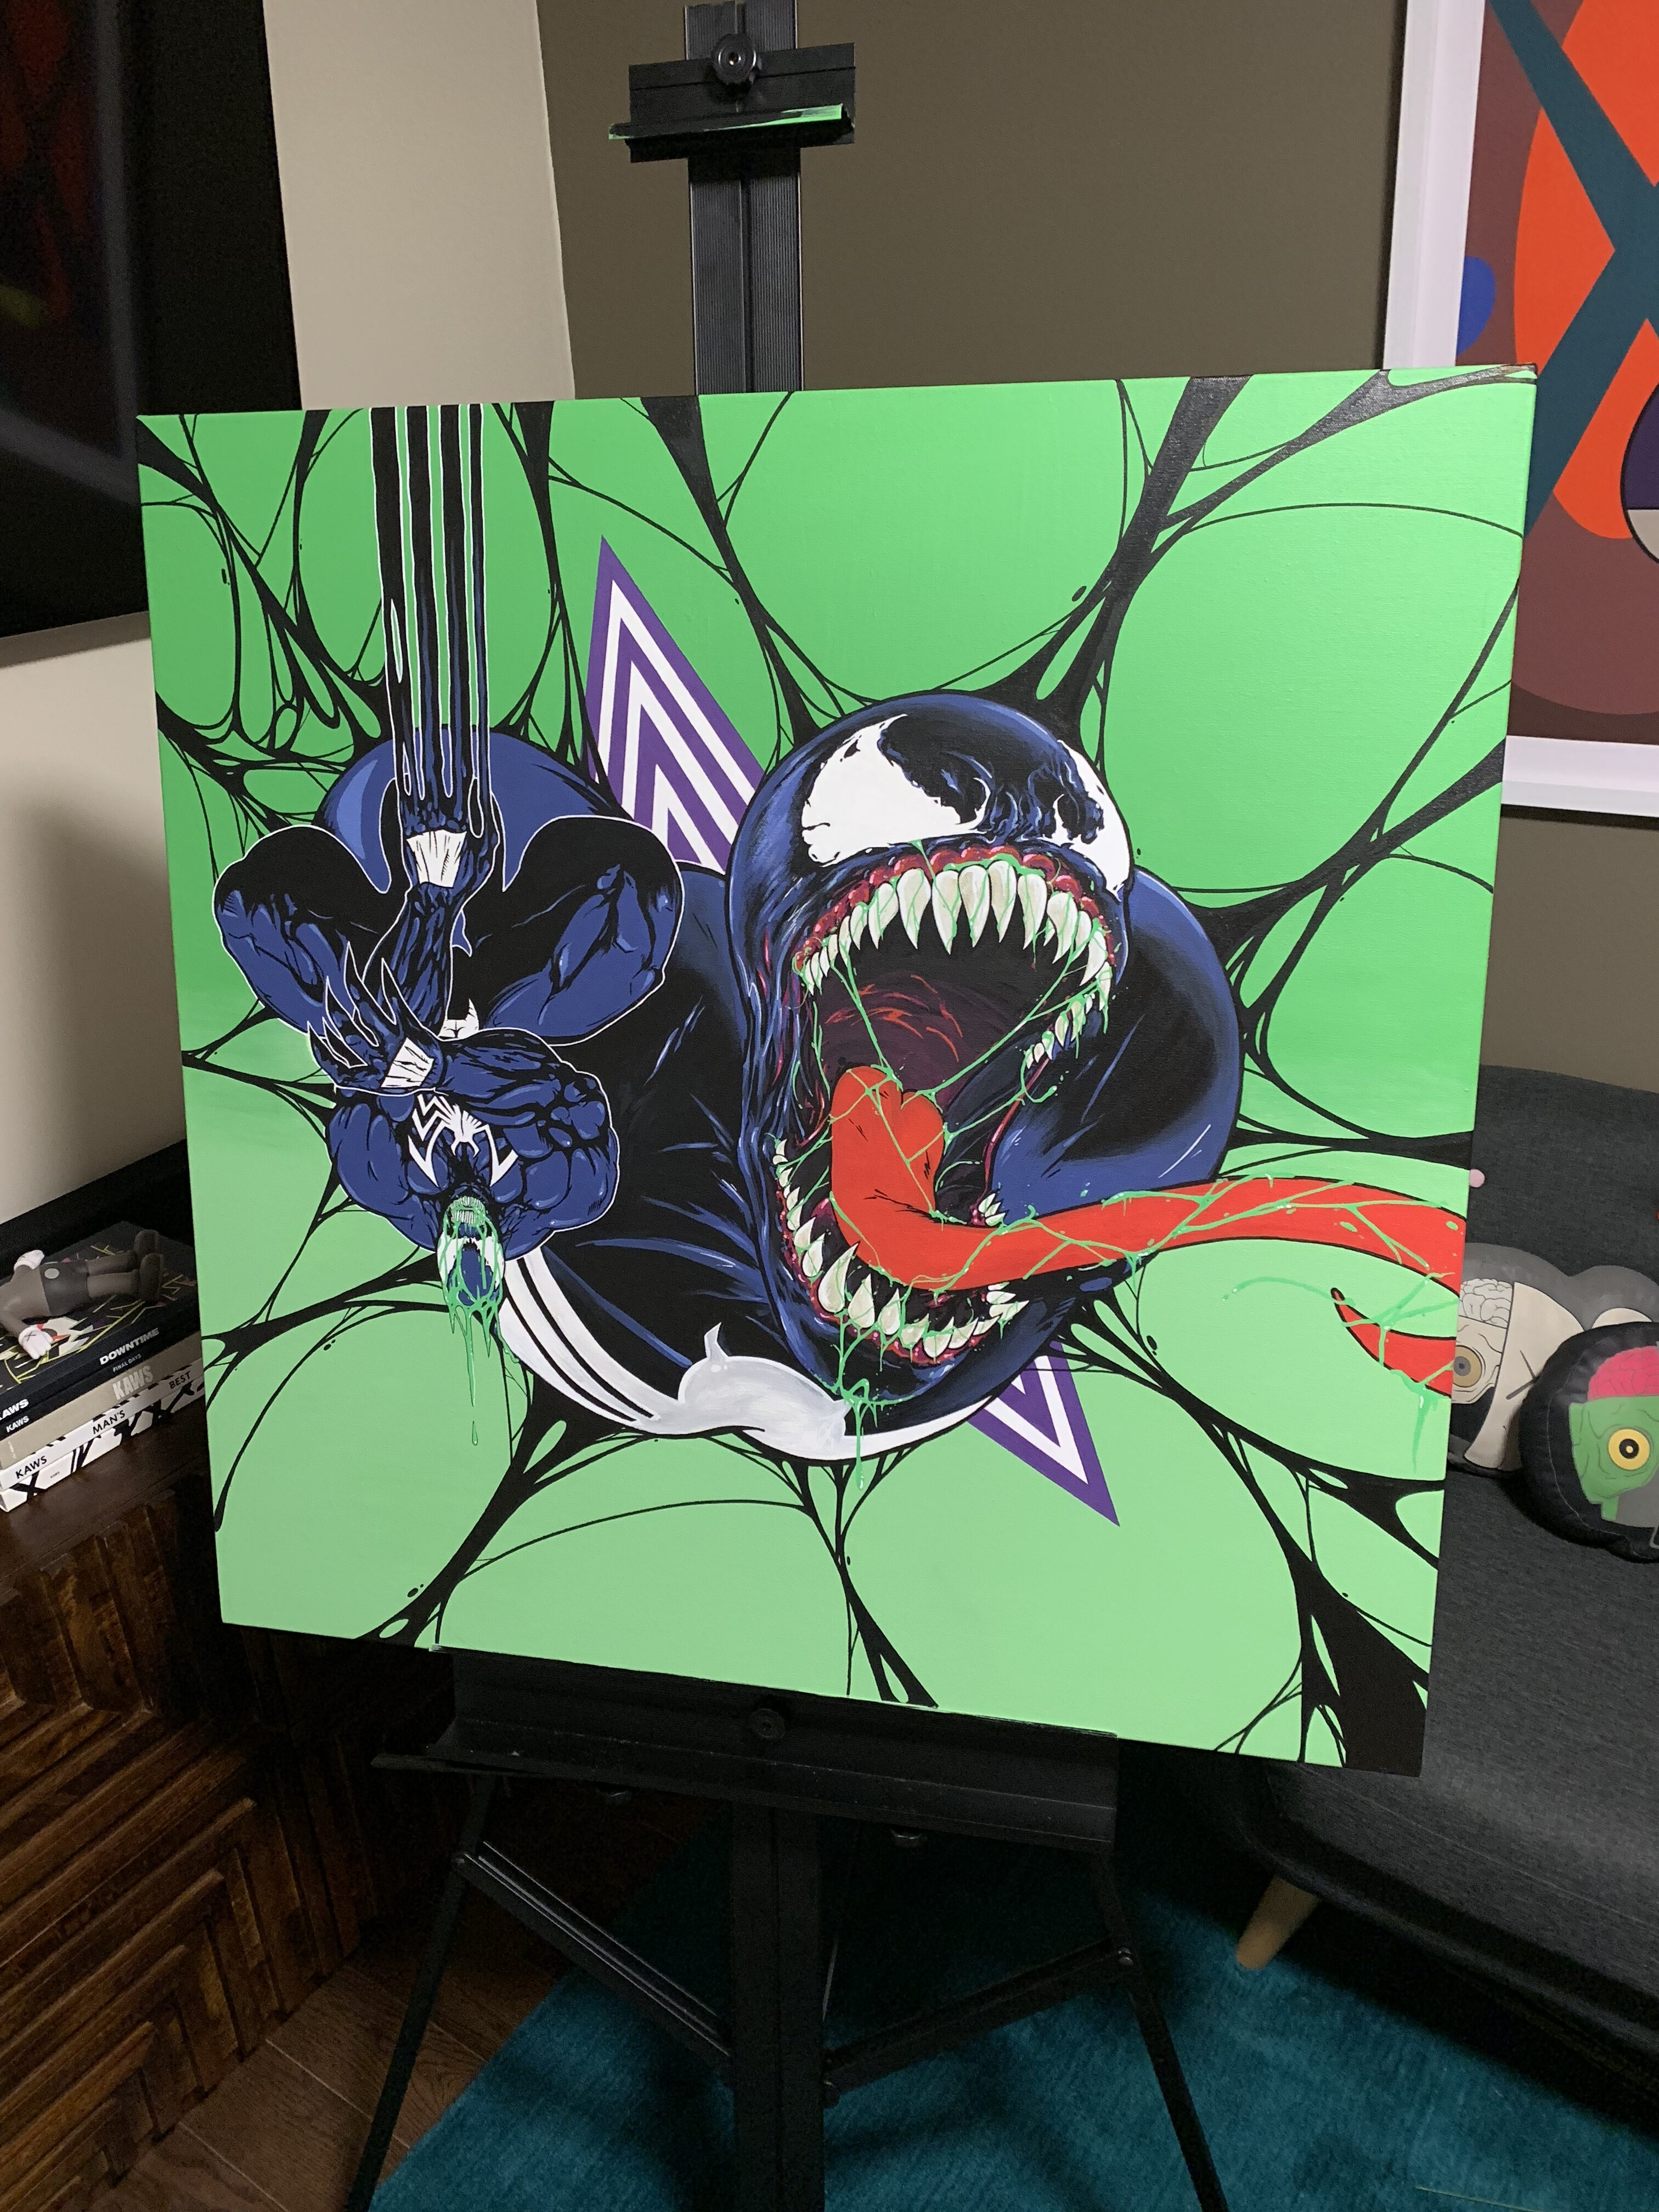 "Venom by Nover, 36x36"", Paint on Canvas, 2019."